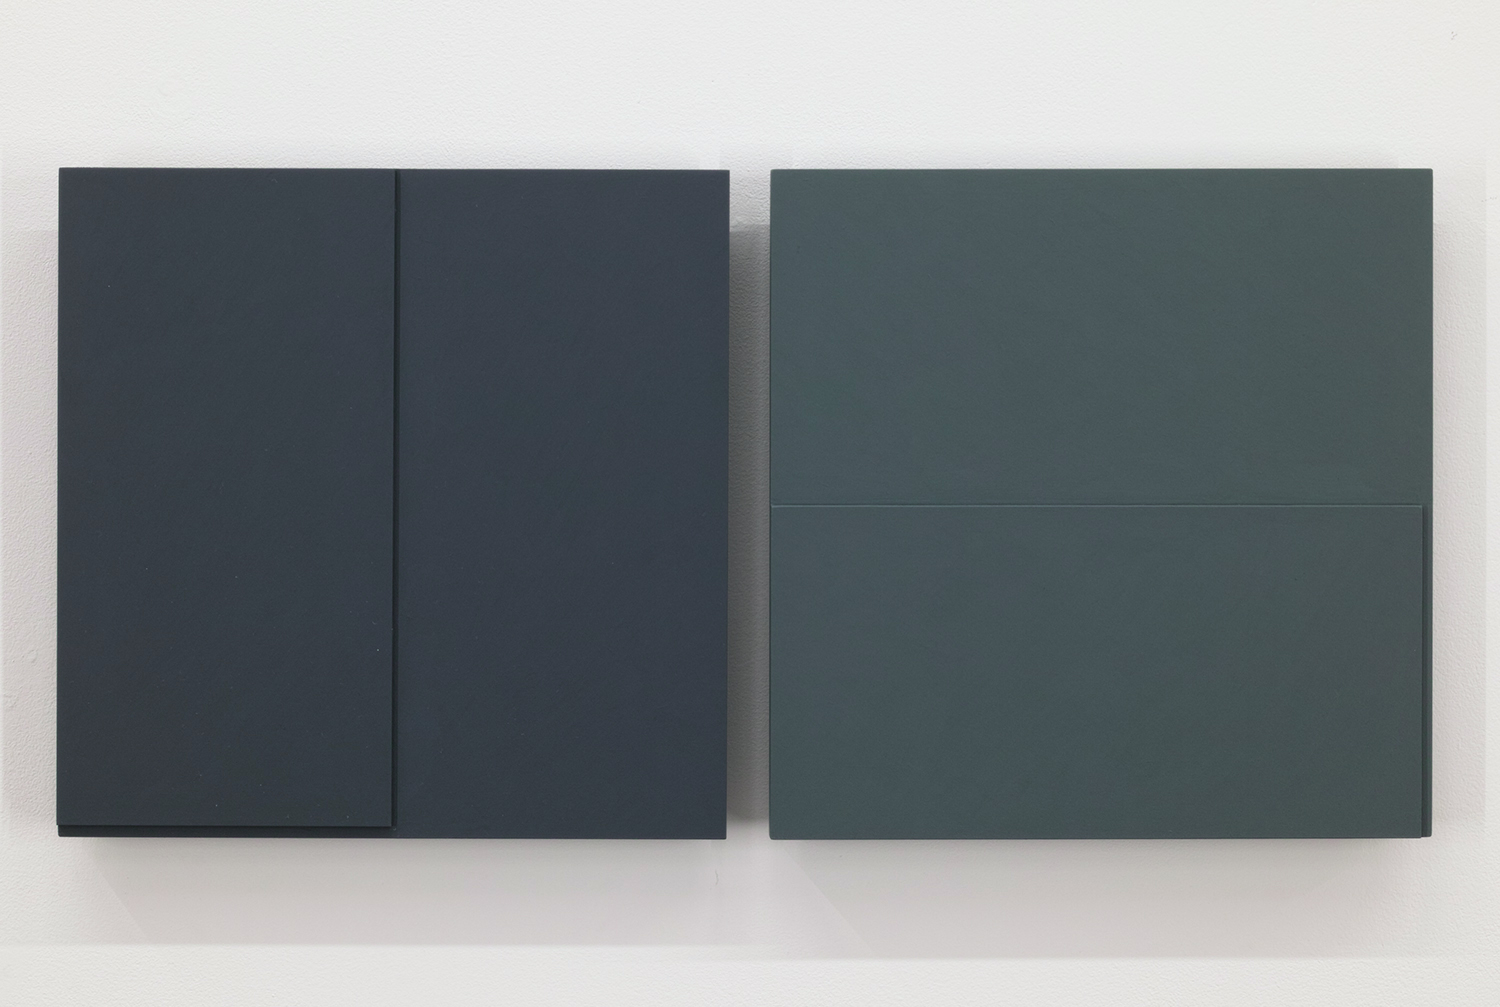 TS1721<br>Colour Gesso on Panel, 25 x 25 cm each (set of 2), 2017